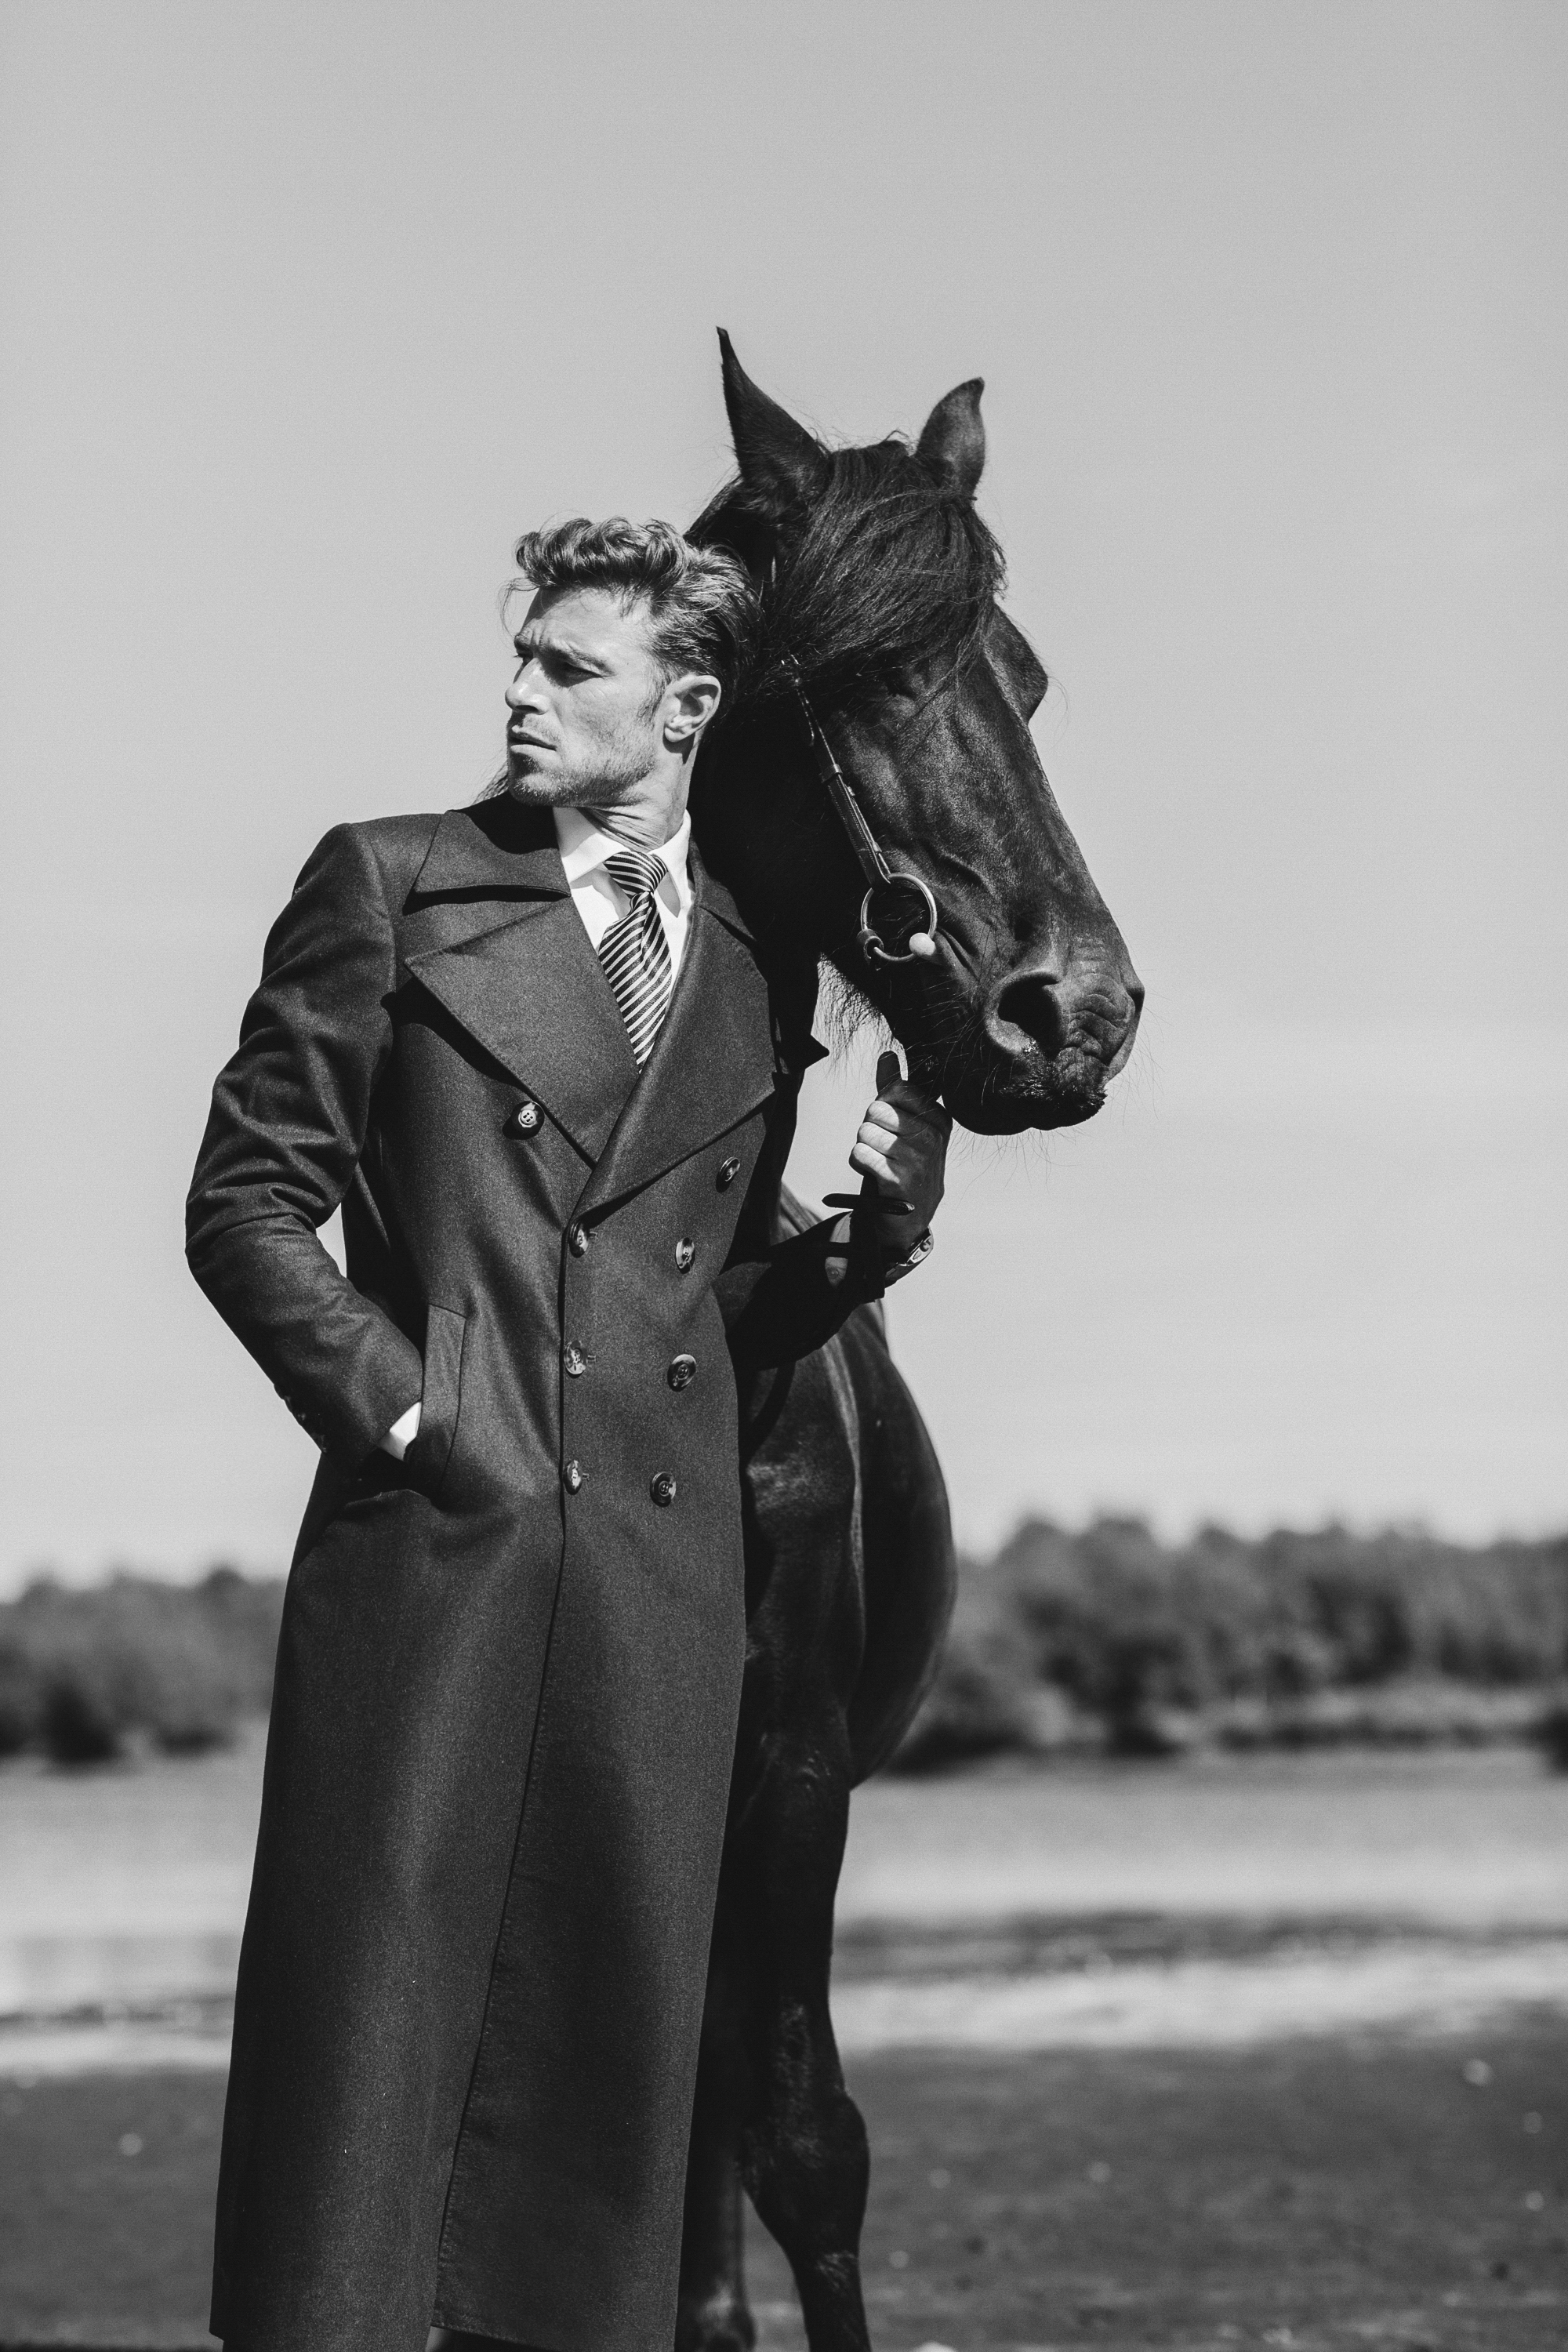 eternal-gentleman-fashionisto-exclusive-helen-antony-david-frampton